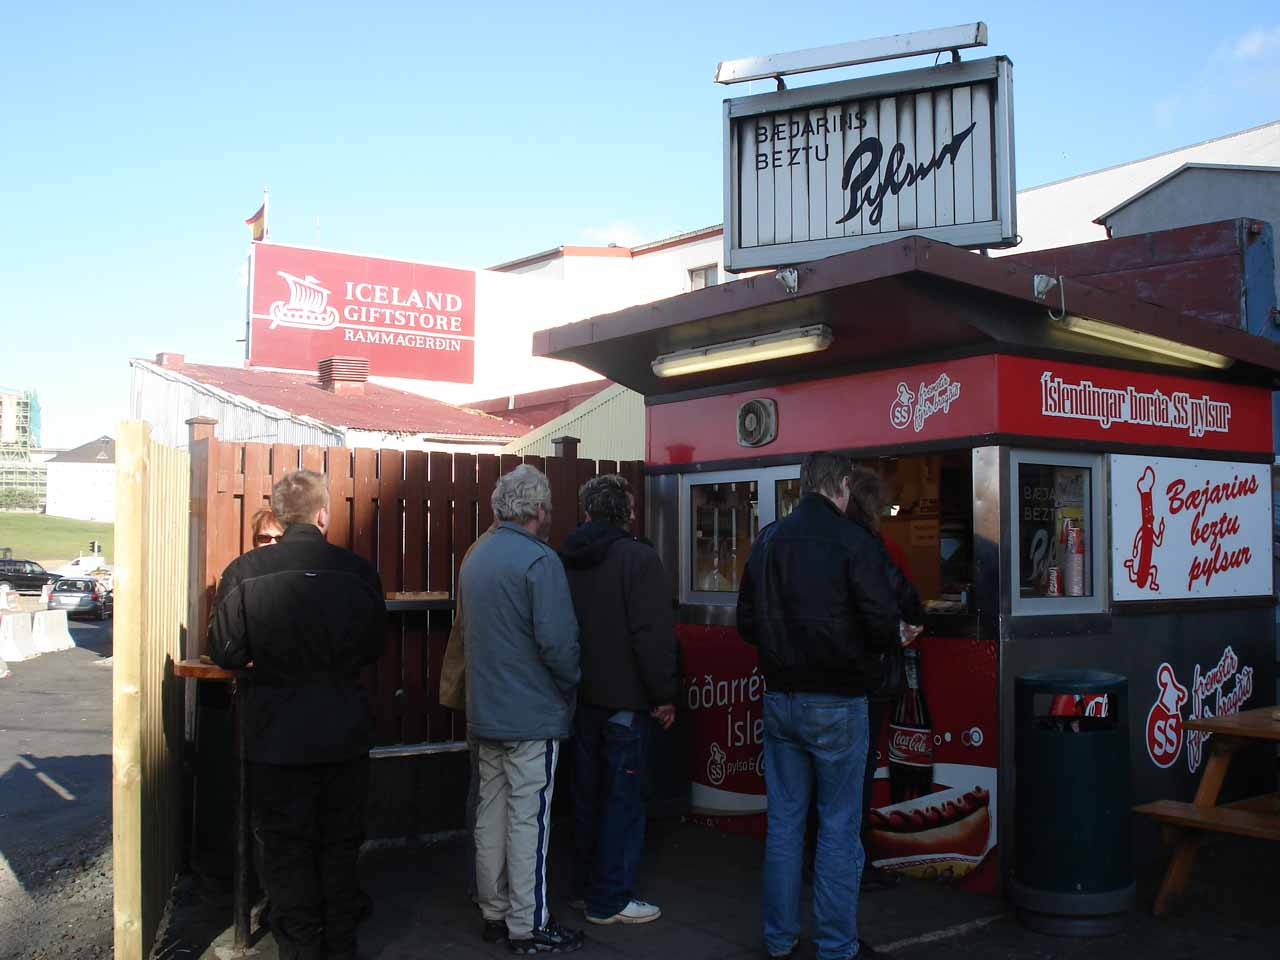 The Bæjarins Beztu hot dog stand